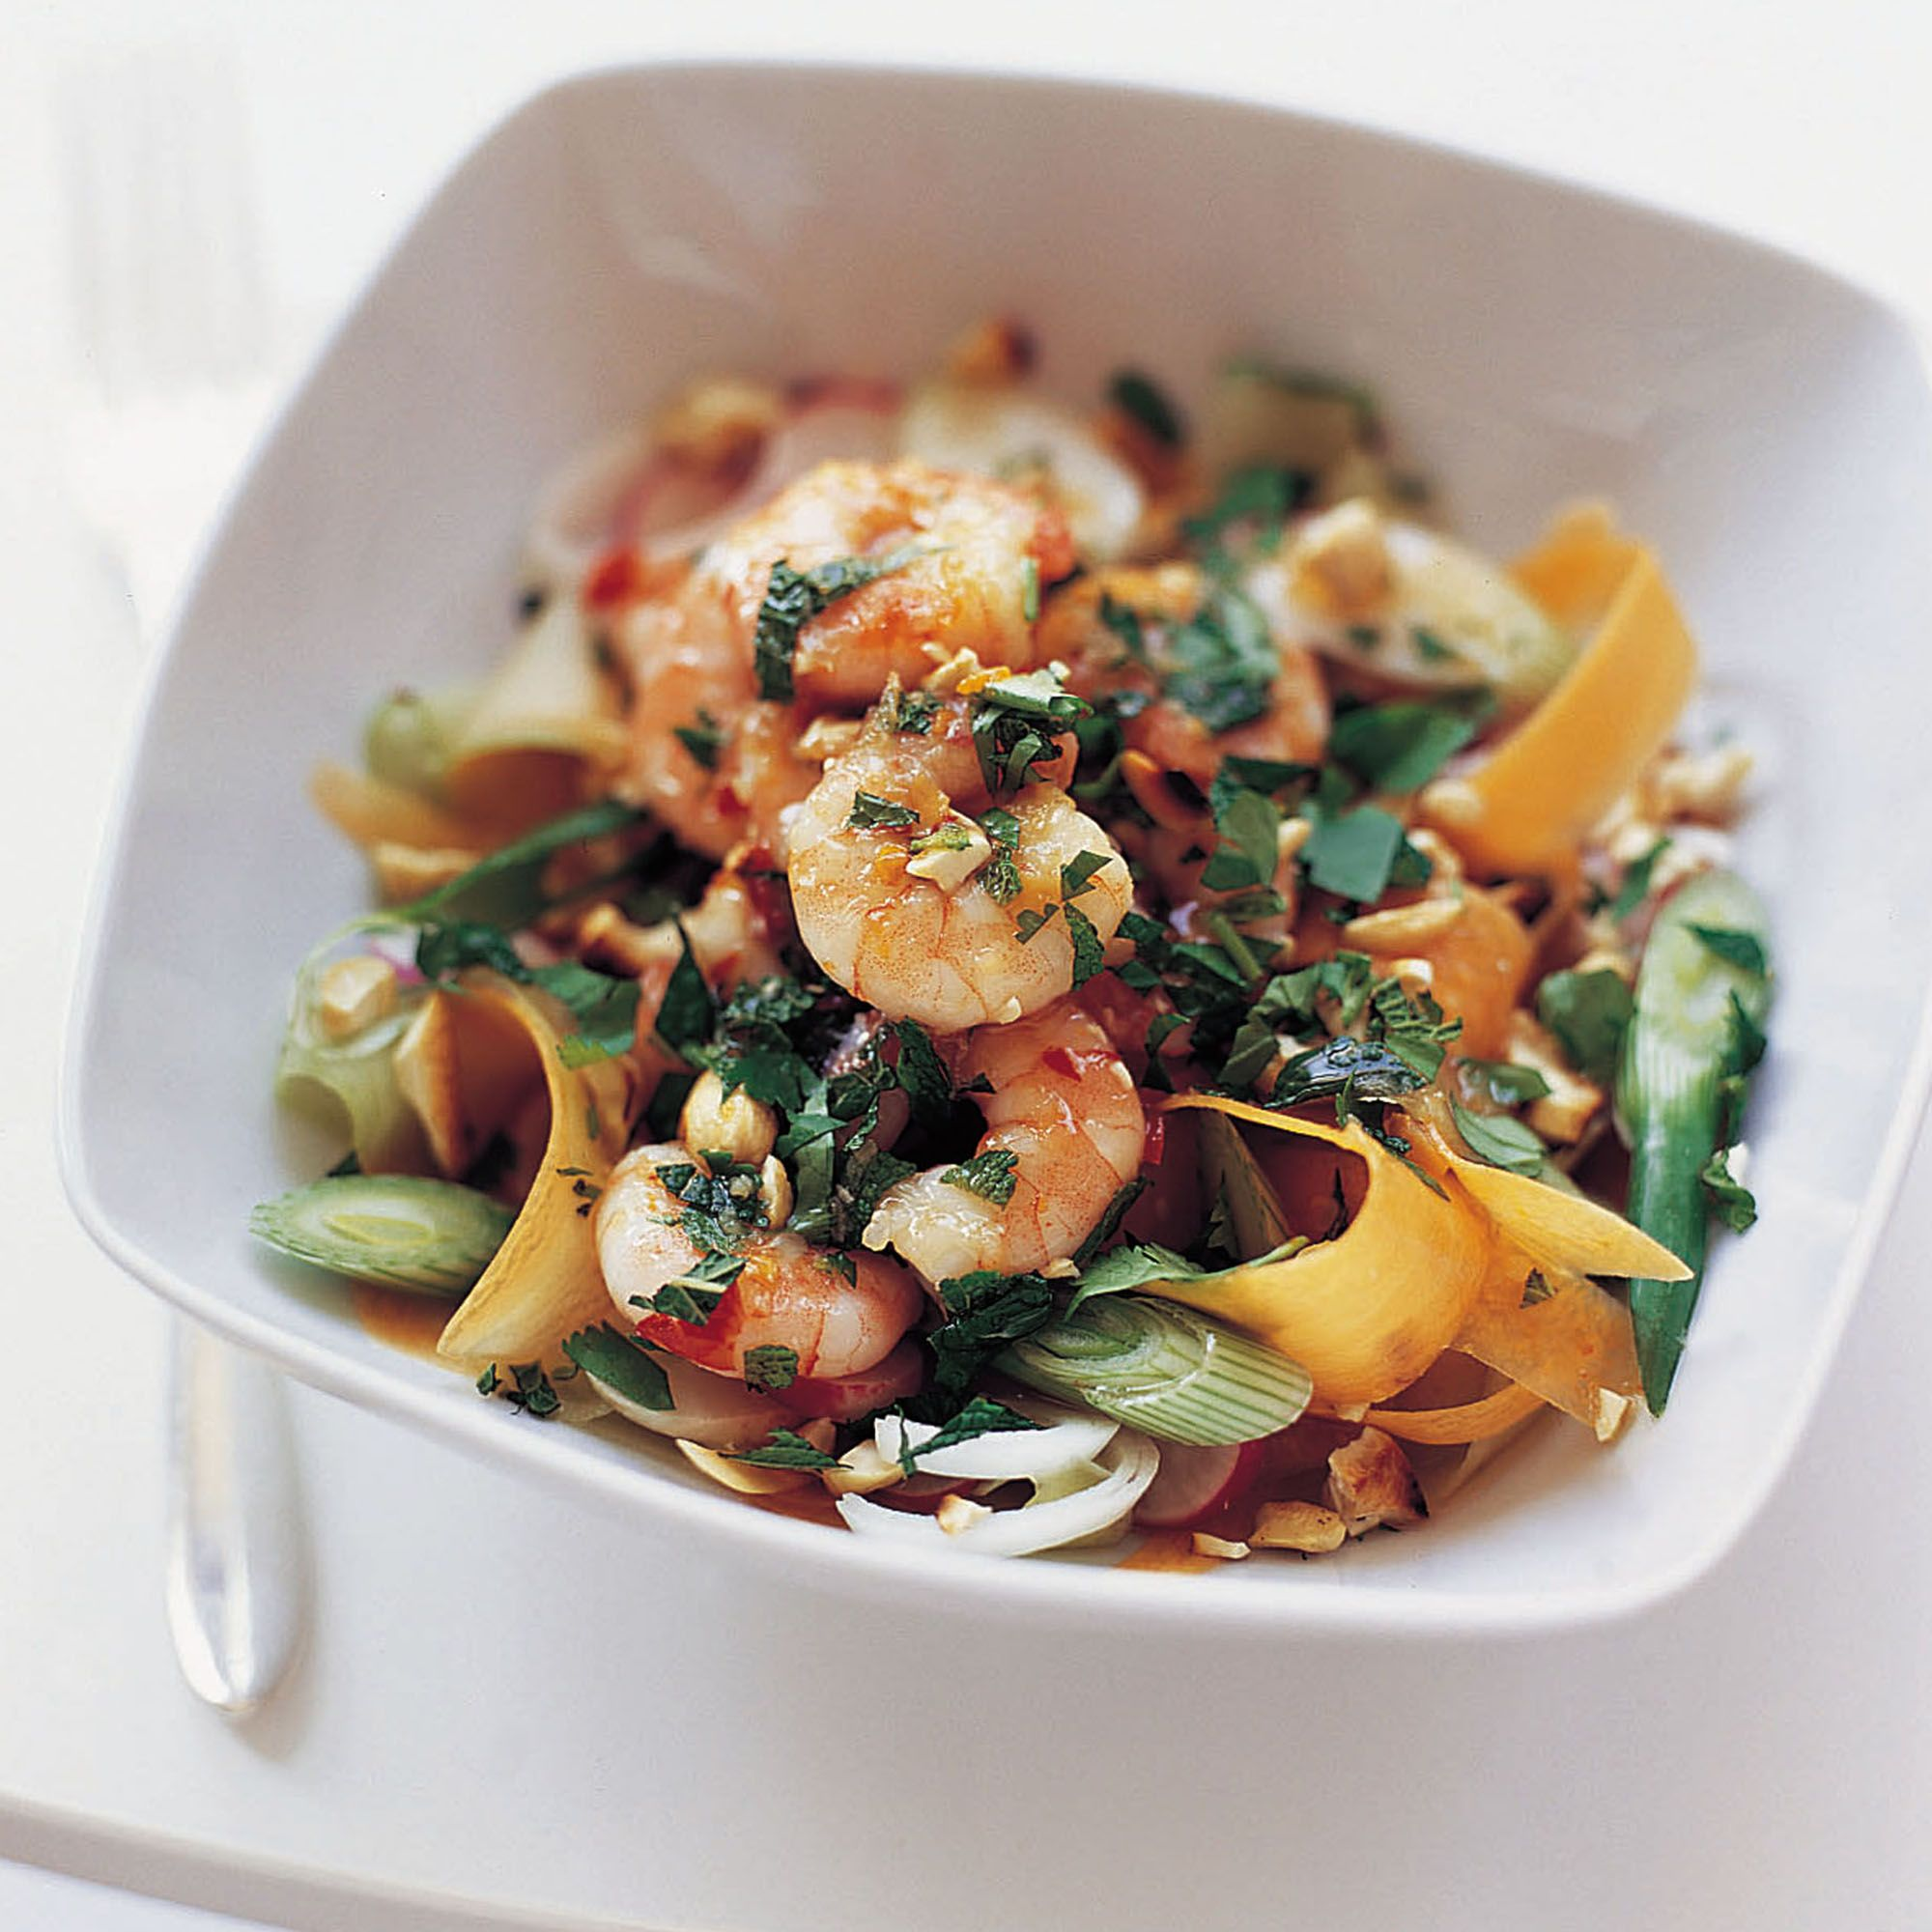 Easy Dinner Party Starter Ideas Part - 21: This Easy Prawn Salad Recipe Is Glamorous Enough For A Dinner Party Starter